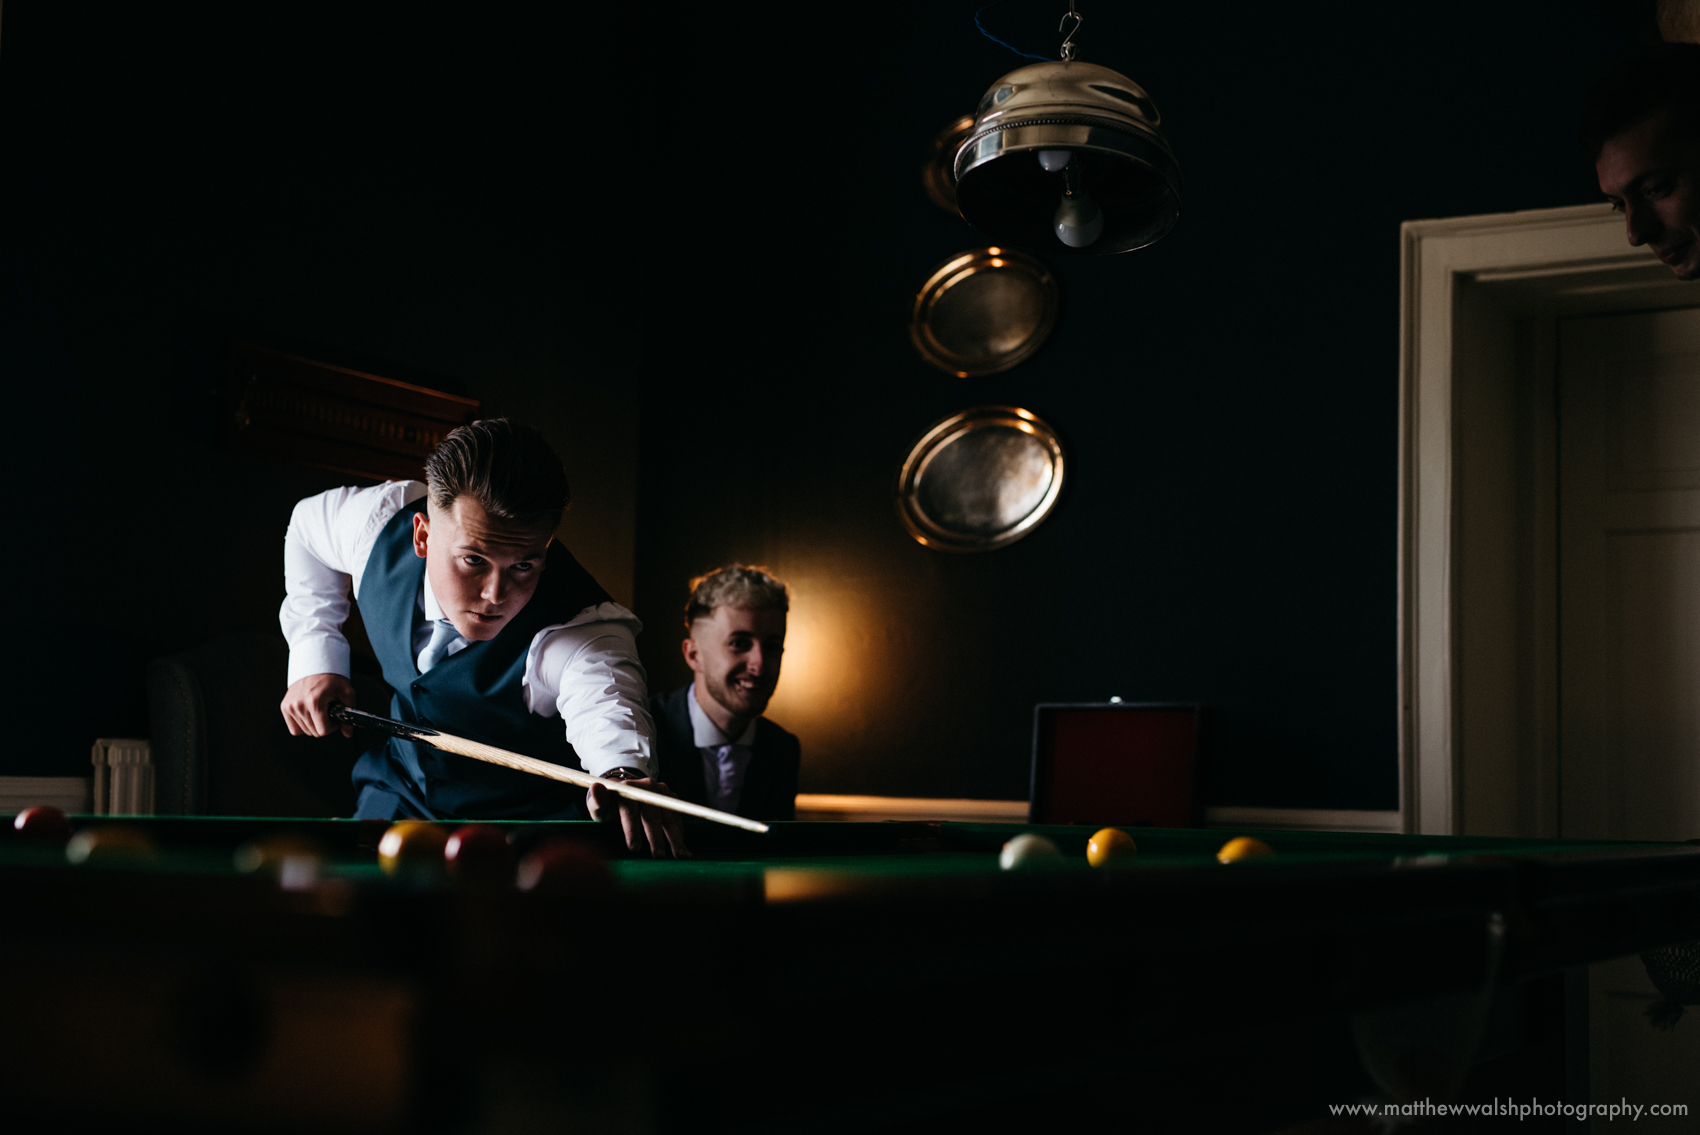 One of the groomsmen playing pool in the pool room